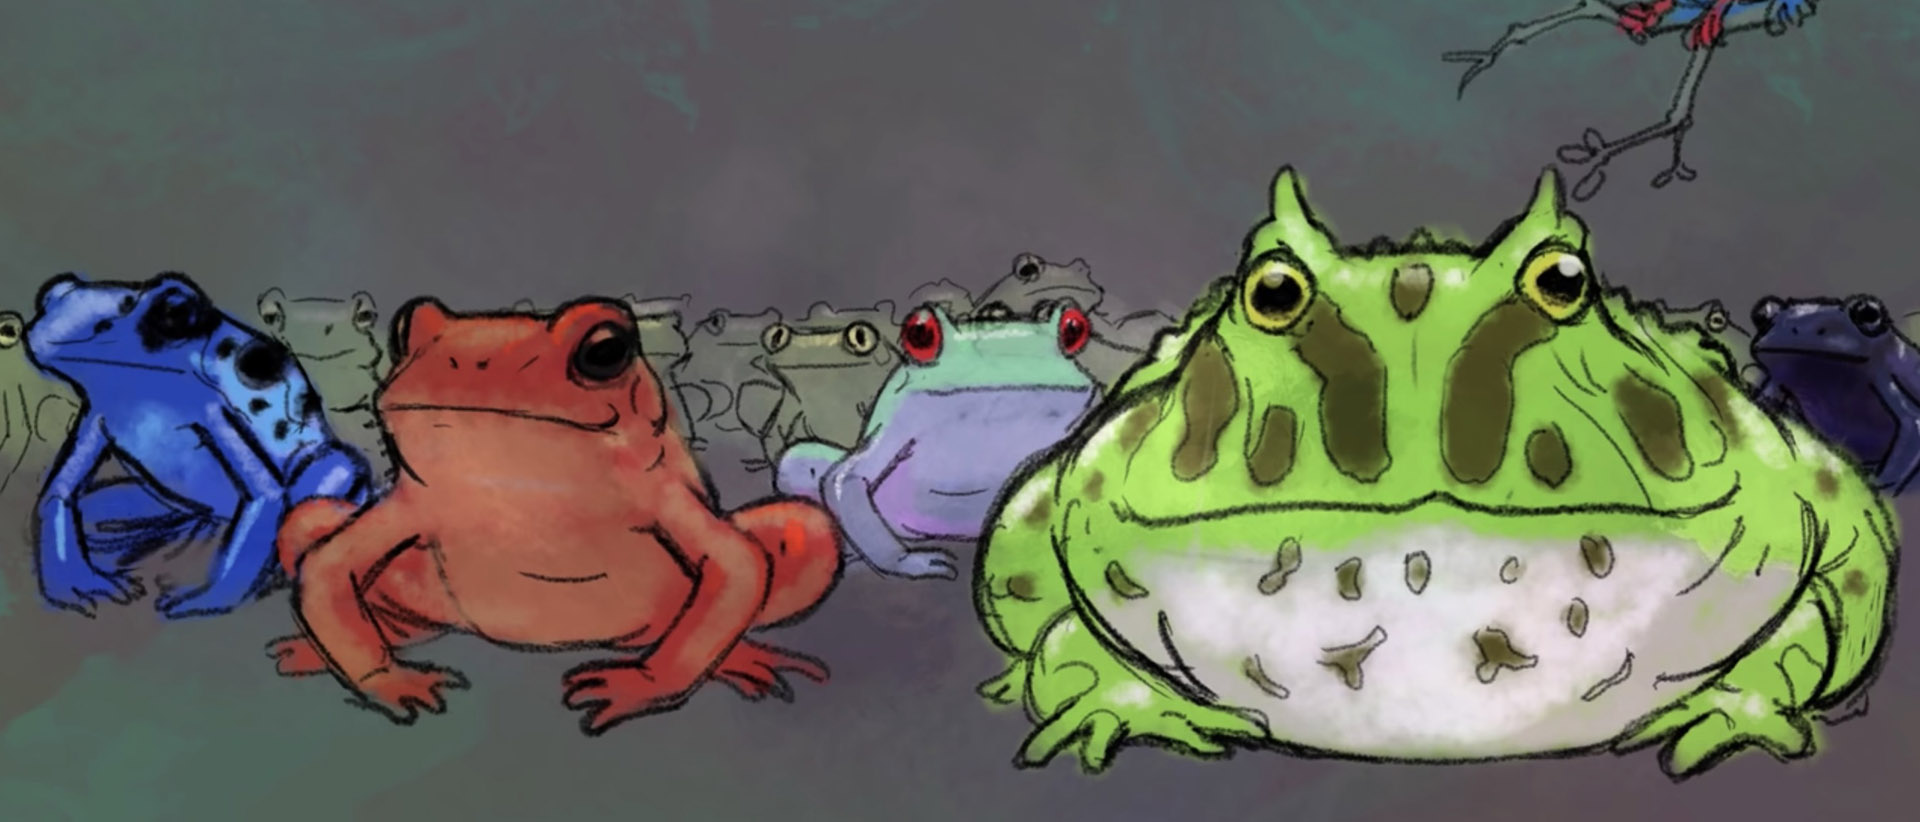 TED-Ed Disappearing Frogs